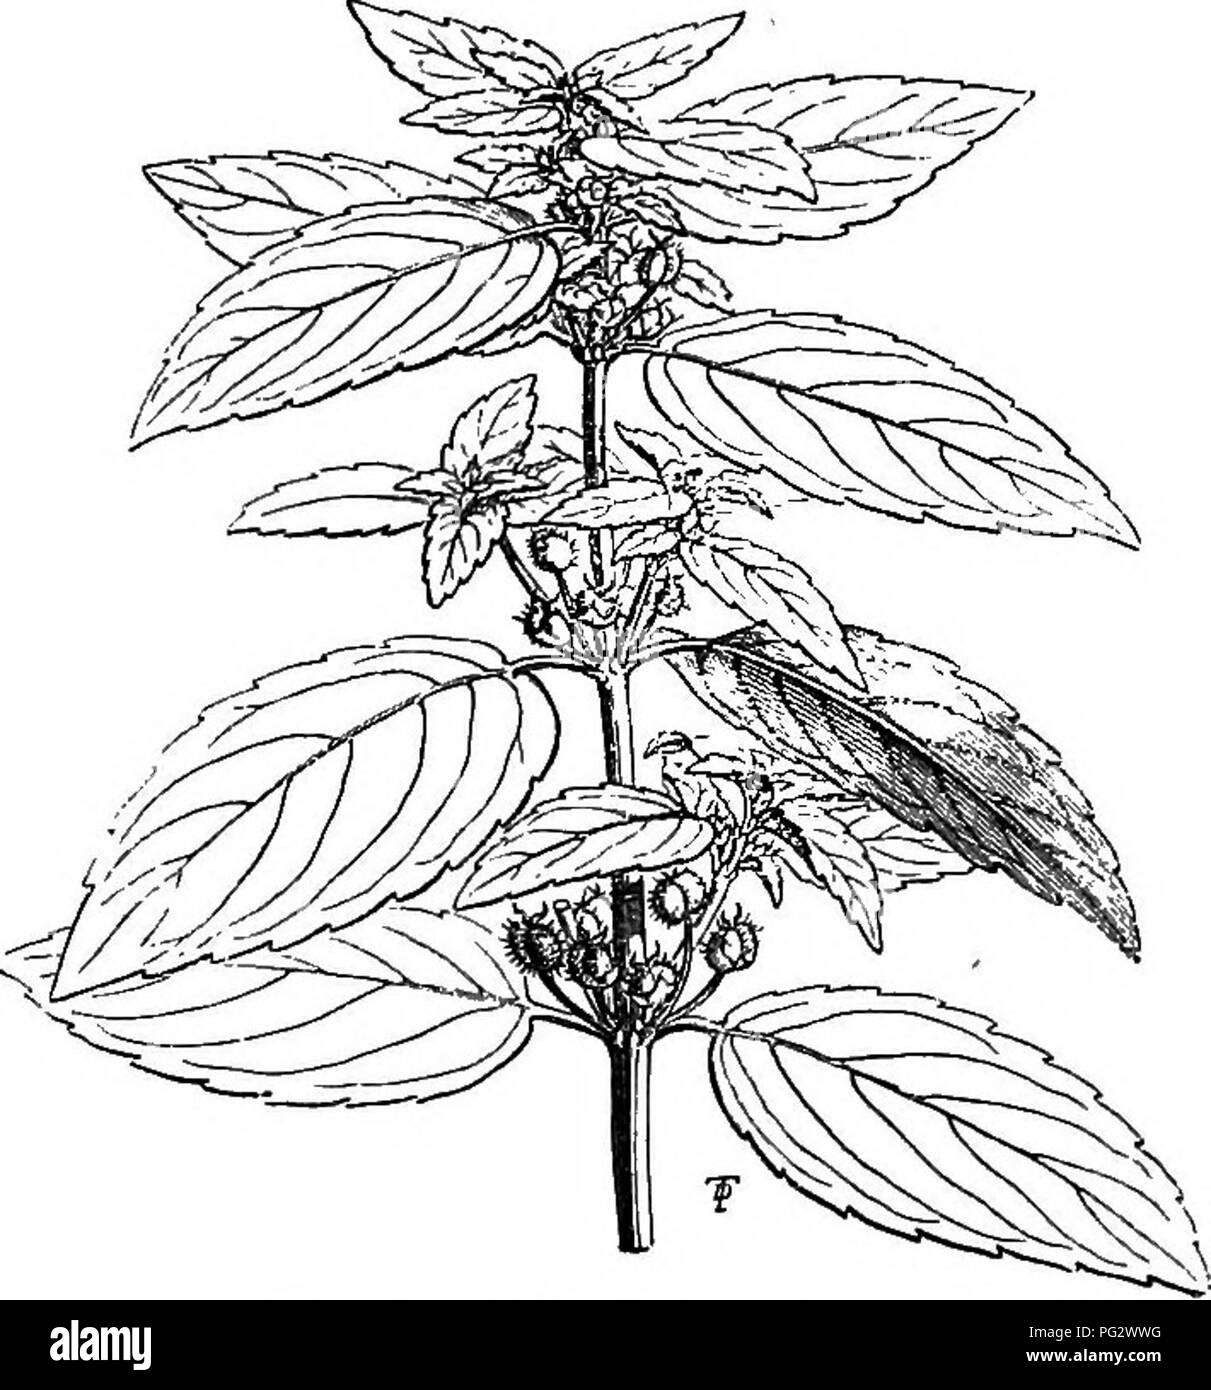 . The natural history of plants. Botany. Kg. 177. Male stalk. Fig. 179. Female stalk. Fig. 178. Male flower {^). Fig. 180. Female flower (f). Fig. 181. Female flower, without gynseceum. Fig. 182. Normal female flower seen from above. Fig. 183. Female flower Fig. 184. Female flower with four sepals. with five sepals. JErythrococca are woody and thorny; finally, several herbaceous Cape species have an androceum reduced like that of Bysopsis to three stamens. Tetrorchidium, consisting of shrubs from tropical America, have nearly the same vegetative organs and flowers as the species of Mercurialis Stock Photo